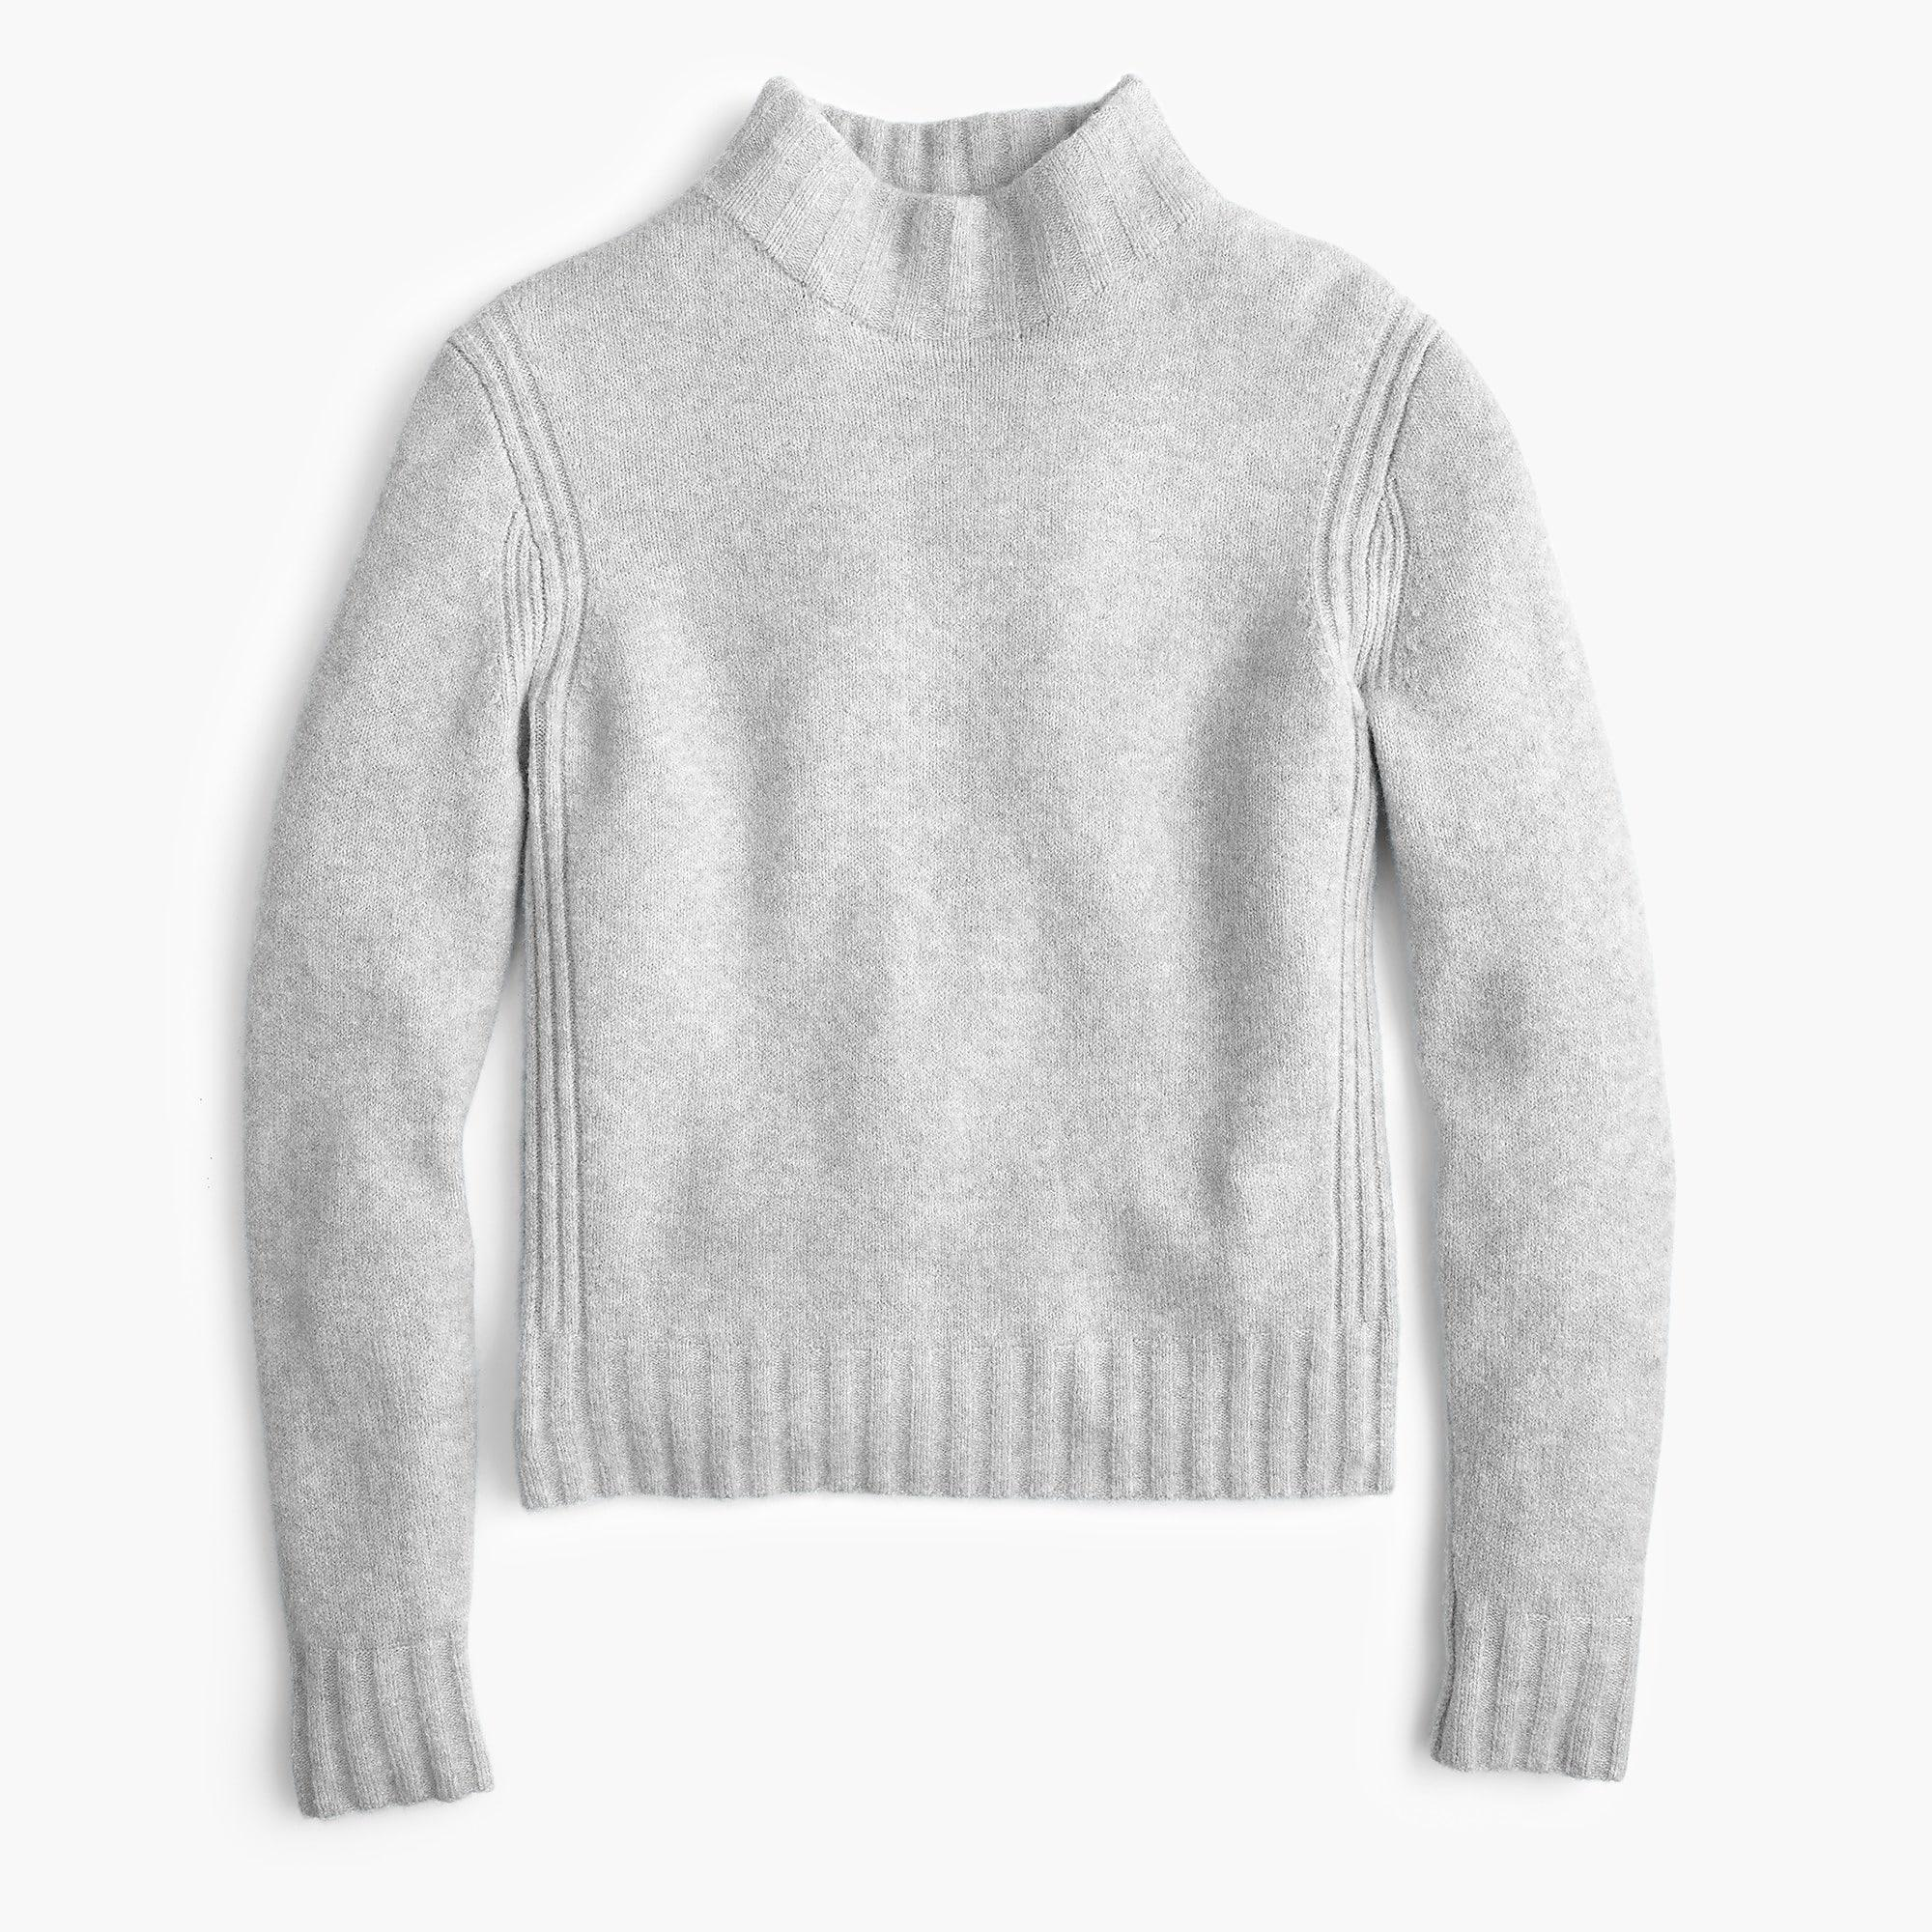 c2083a20542 Lyst - J.Crew Mockneck Sweater In Supersoft Yarn in Gray